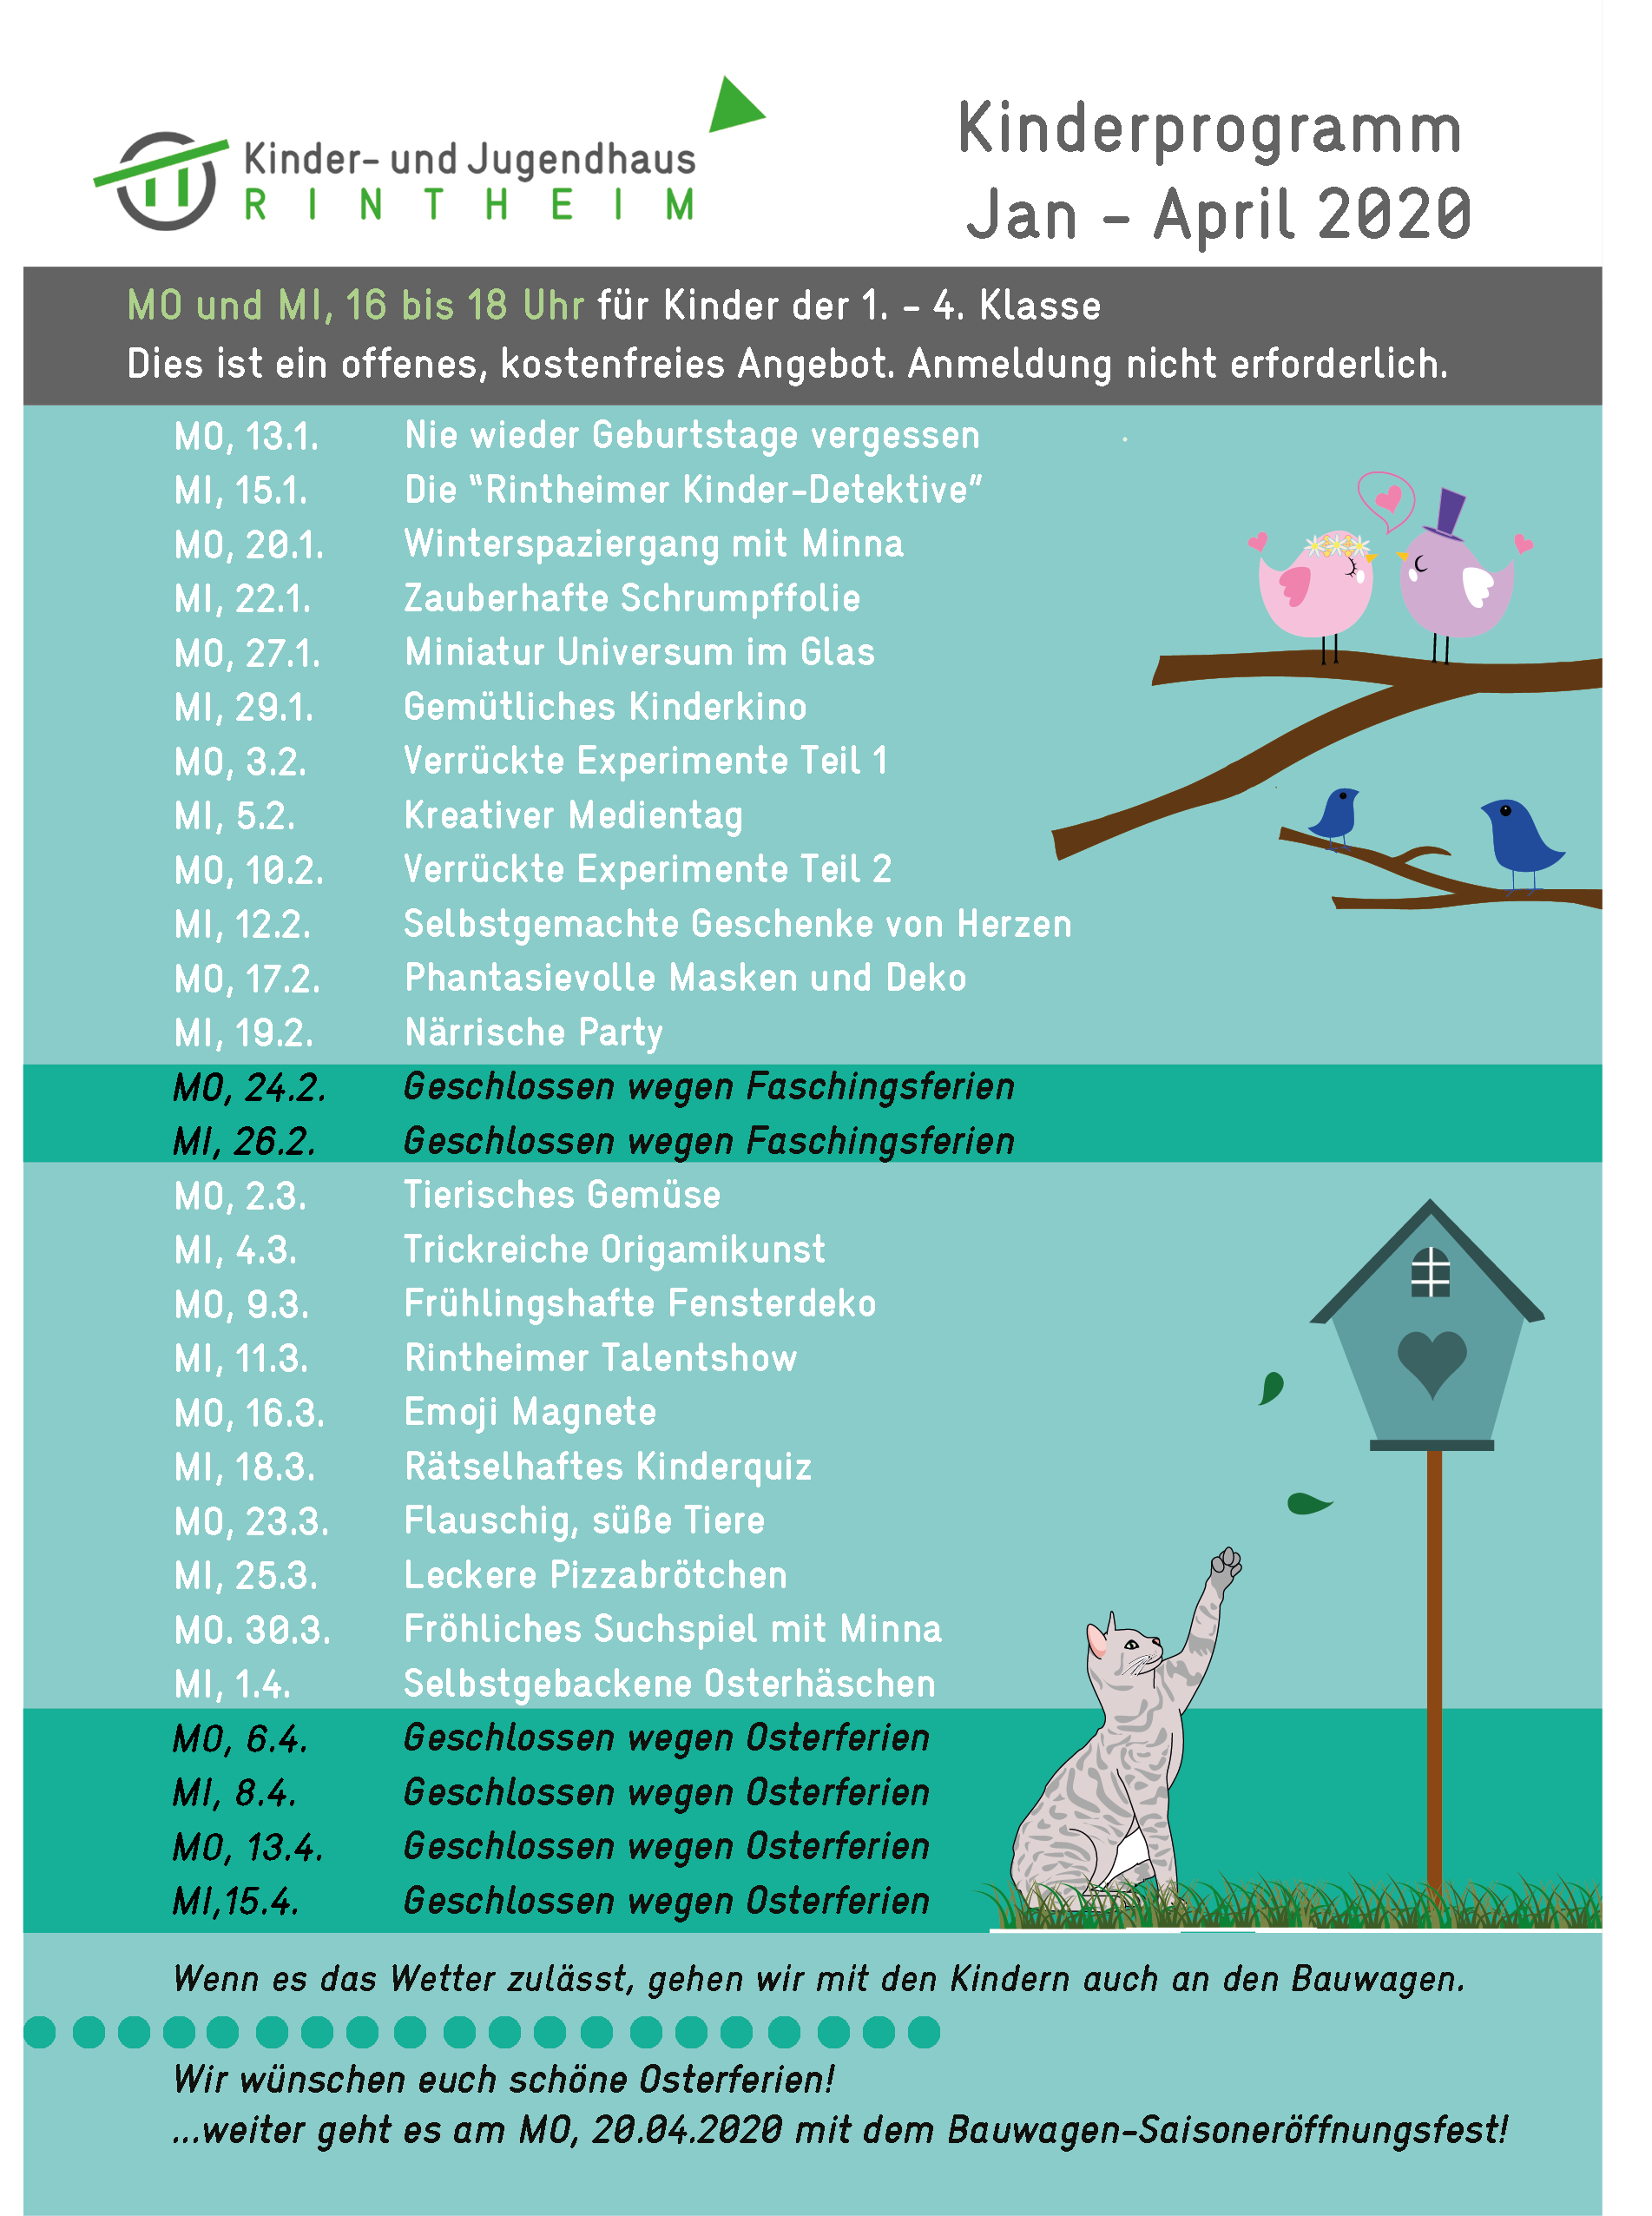 hochKinderprogramm Rintheim_Jan-April 2020_innen -